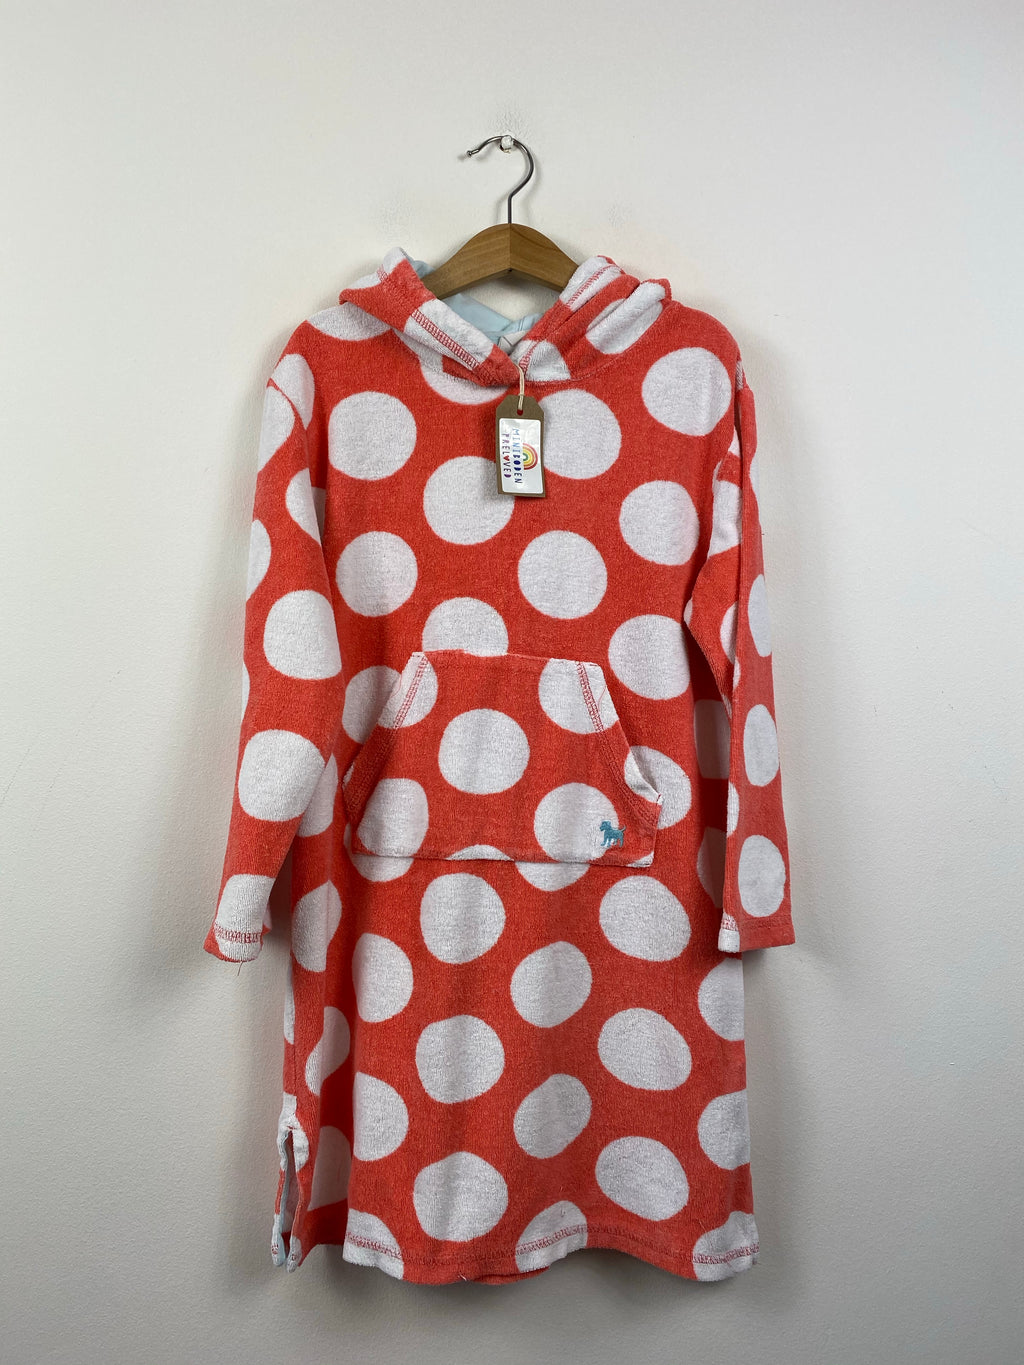 Spotty Coral Towelling Cover Up (7-8 Years)